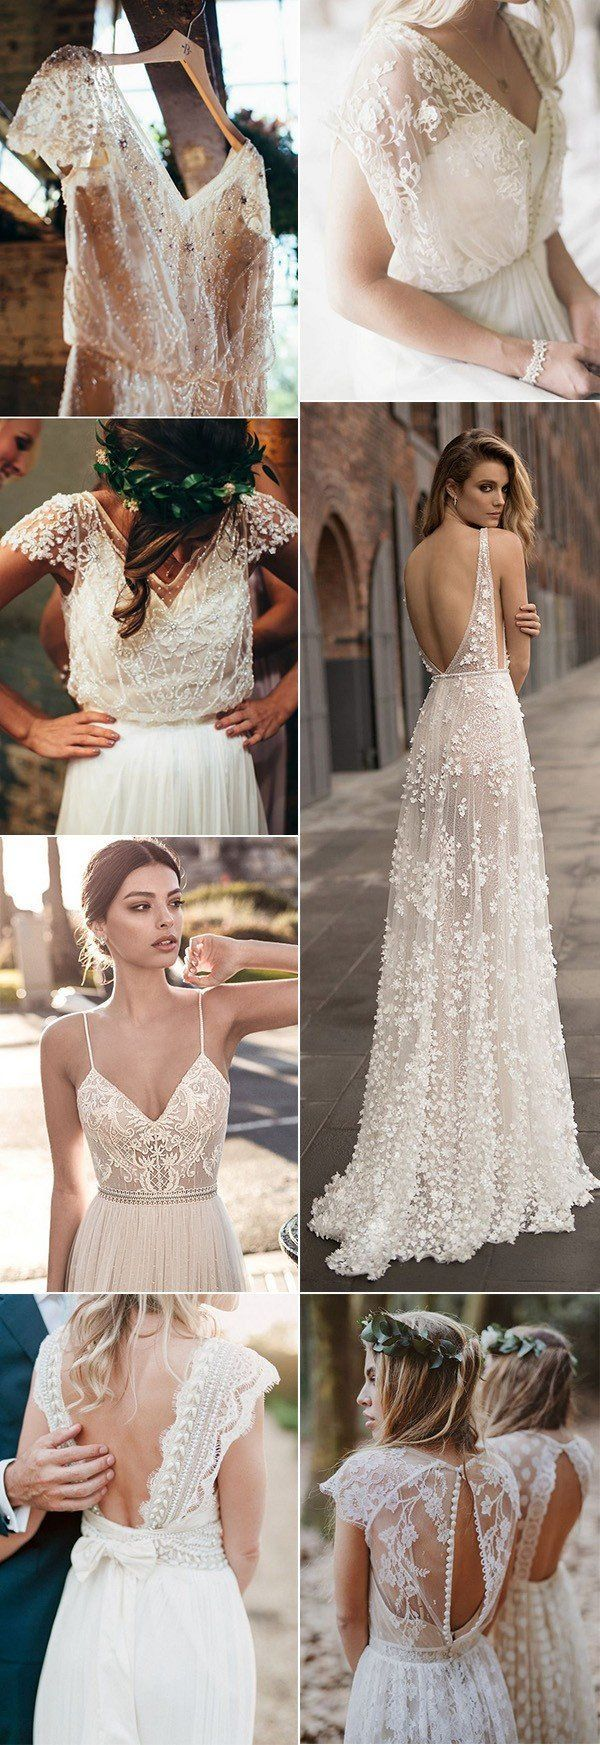 Top 18 Boho Wedding Dresses for 2018 Trends - Page 2 of 2